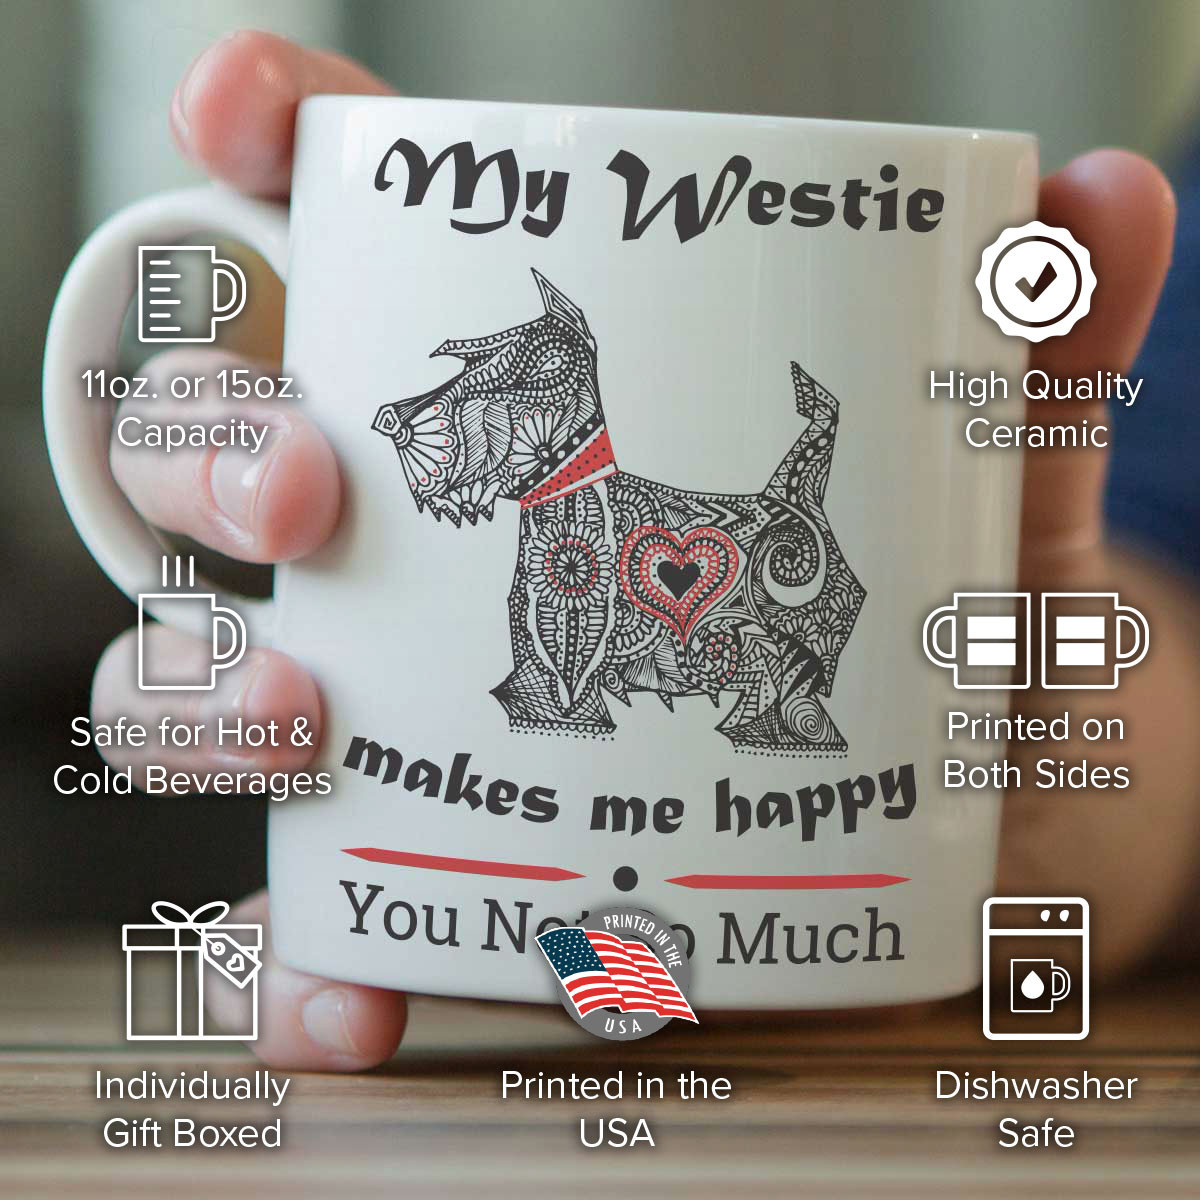 My Westie Makes Me Happy Mug